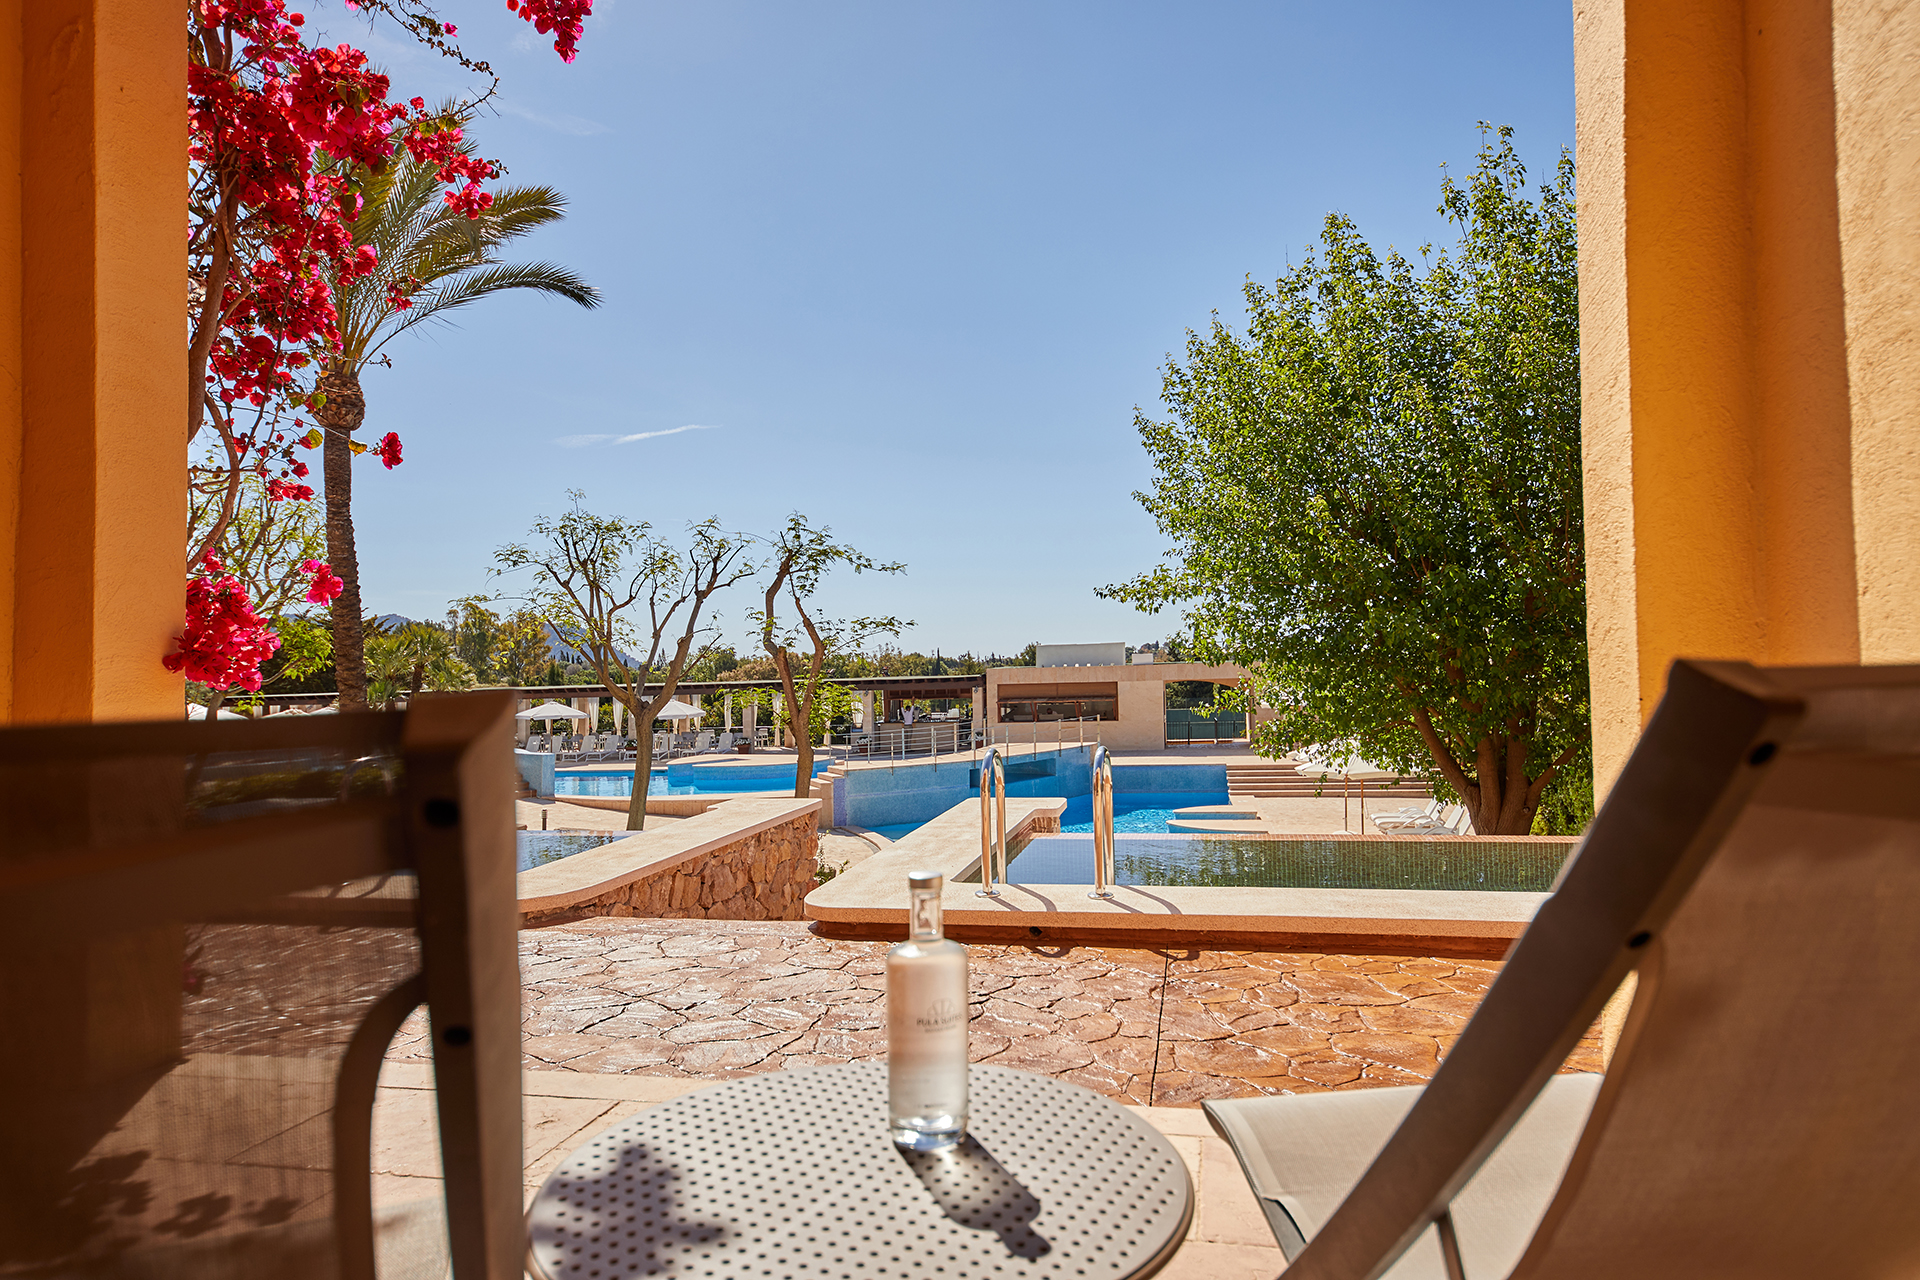 Finca-Hotel Sentido Pula Suites - Swim up Suite